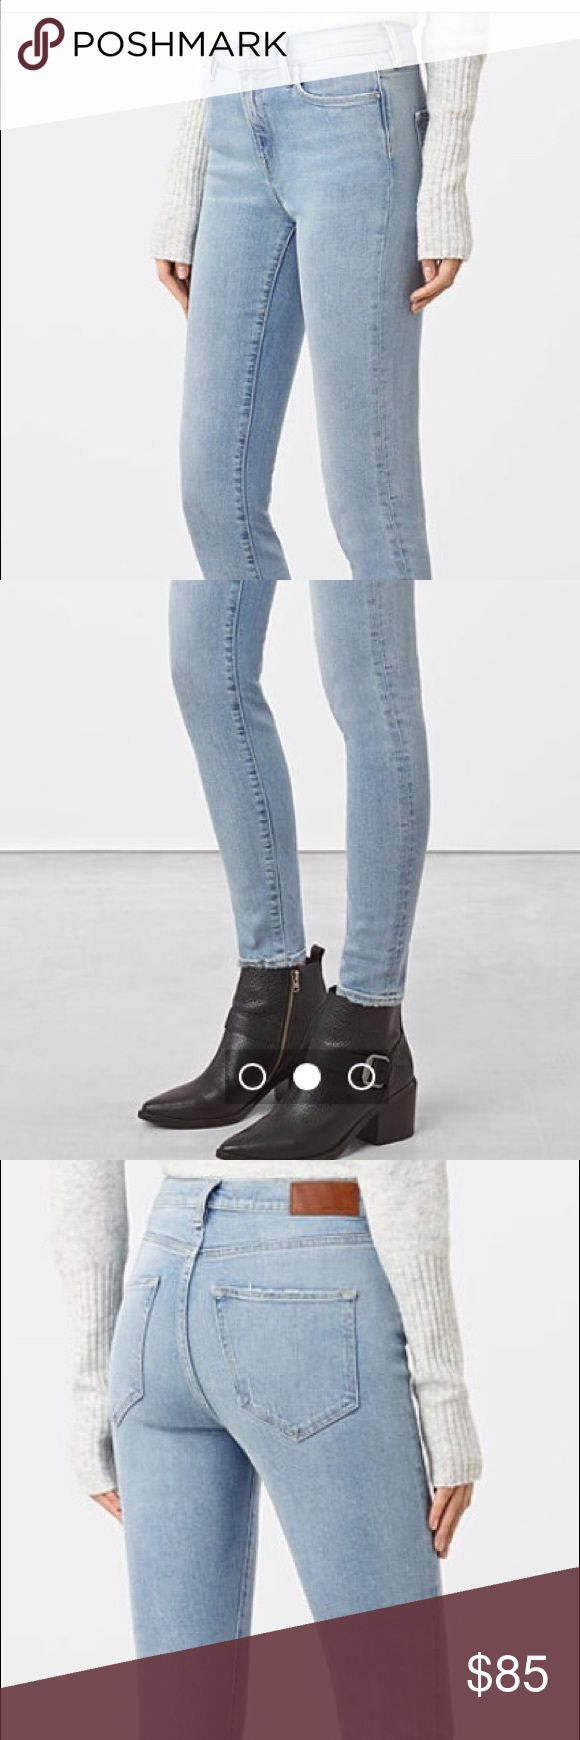 AllSaints skinny jeans, 26, worn once! I knew when I bought these that I should have gotten a size bigger!! I like breathing, so I am parting with them. 😭. They are in like new condition!! All Saints Jeans Skinny